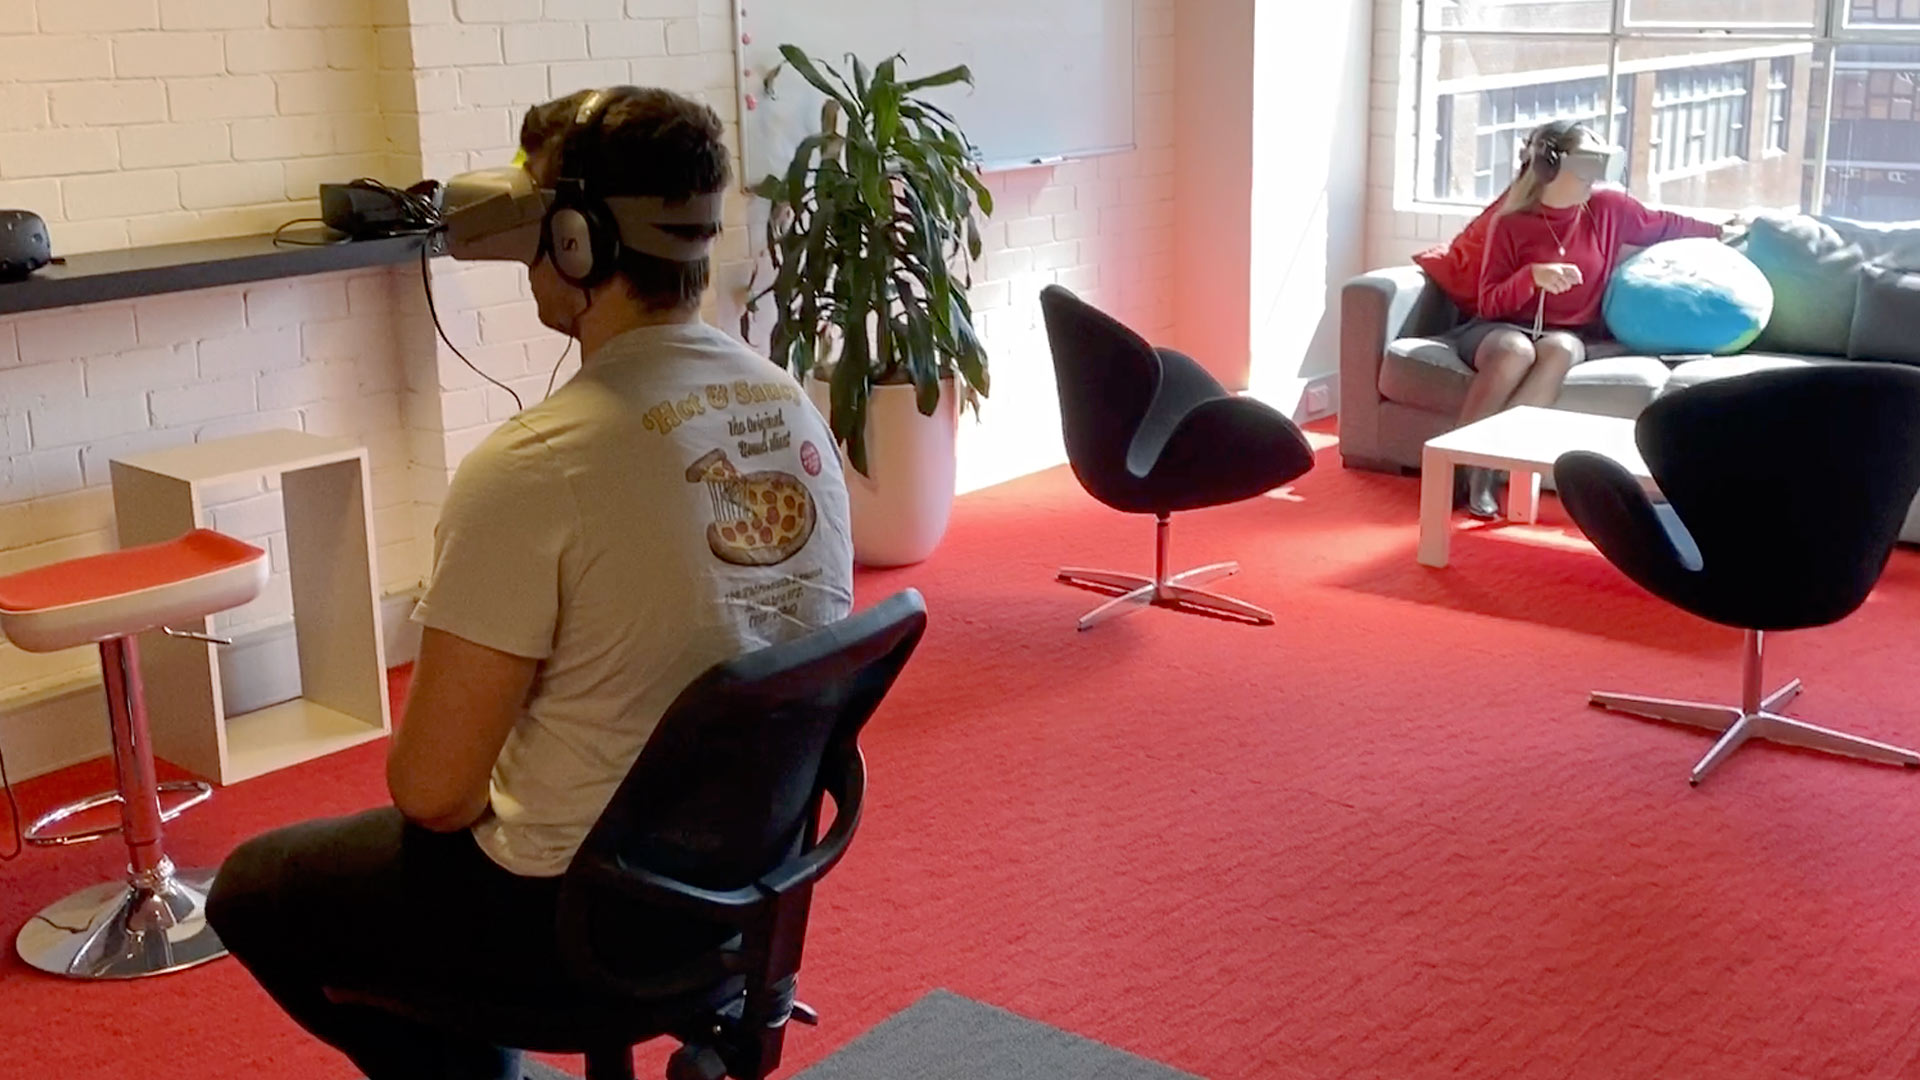 The team are testing a new immersive presentation tool we are developing